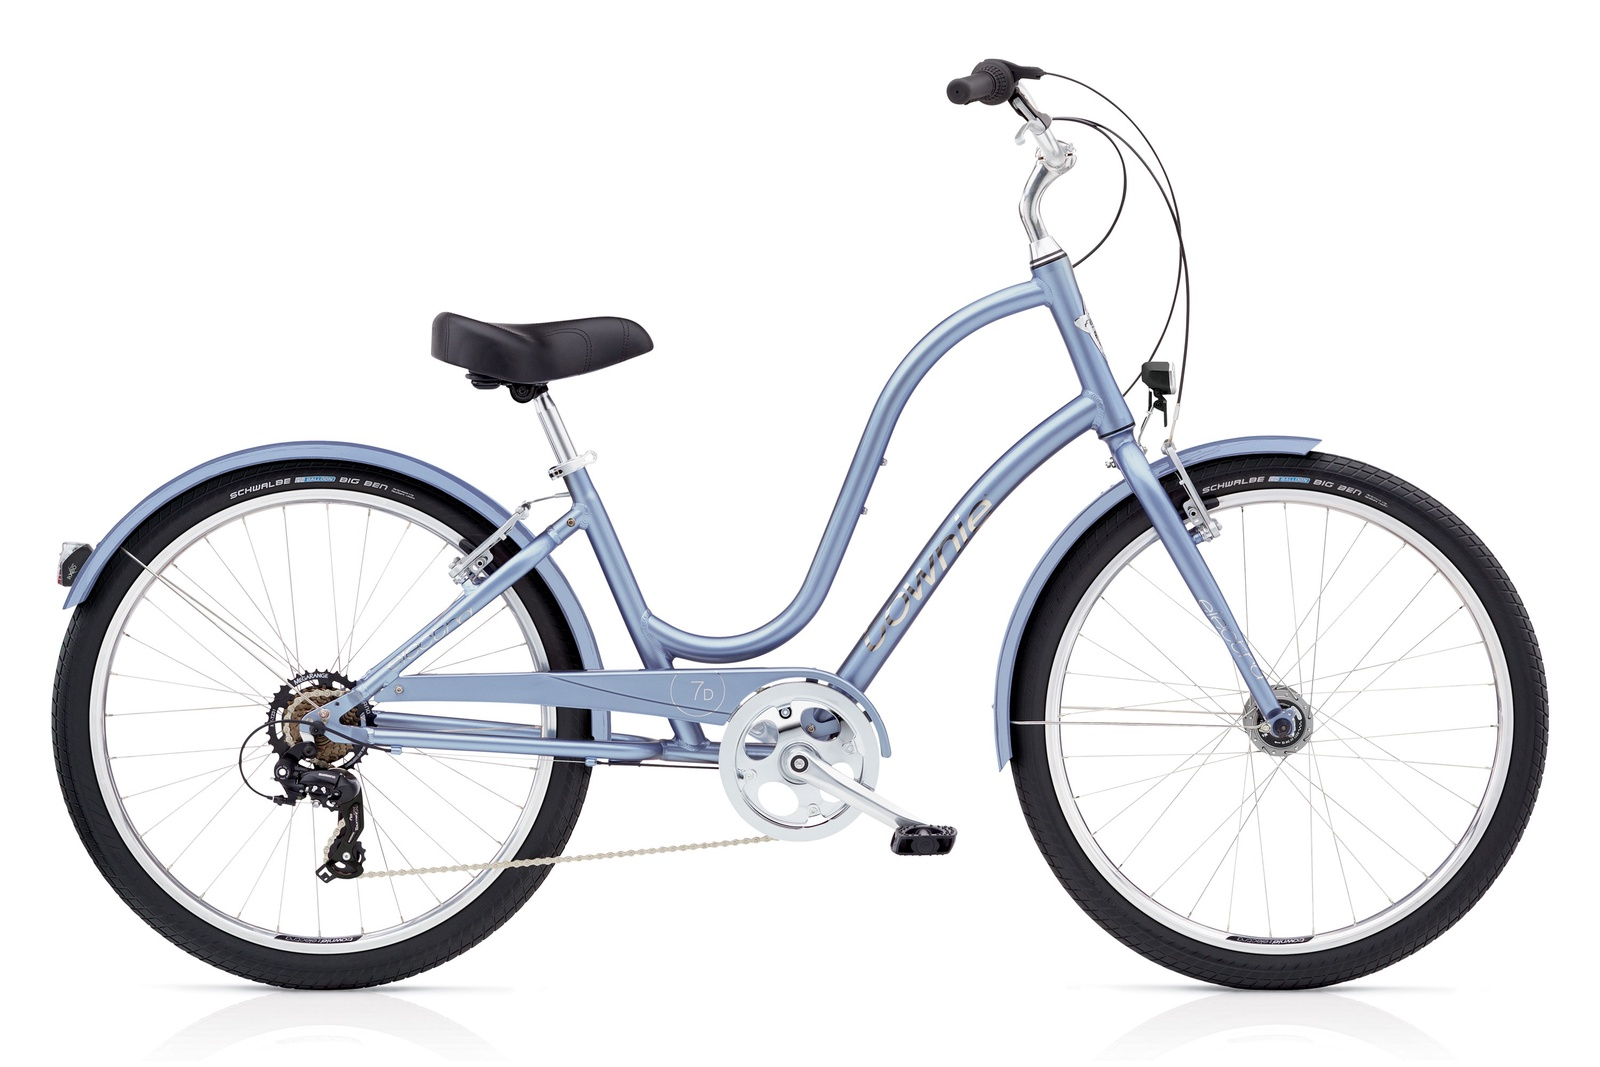 Велосипед Electra Bicycle Company Townie Original 7D Icy Blue, 539988, сиреневый